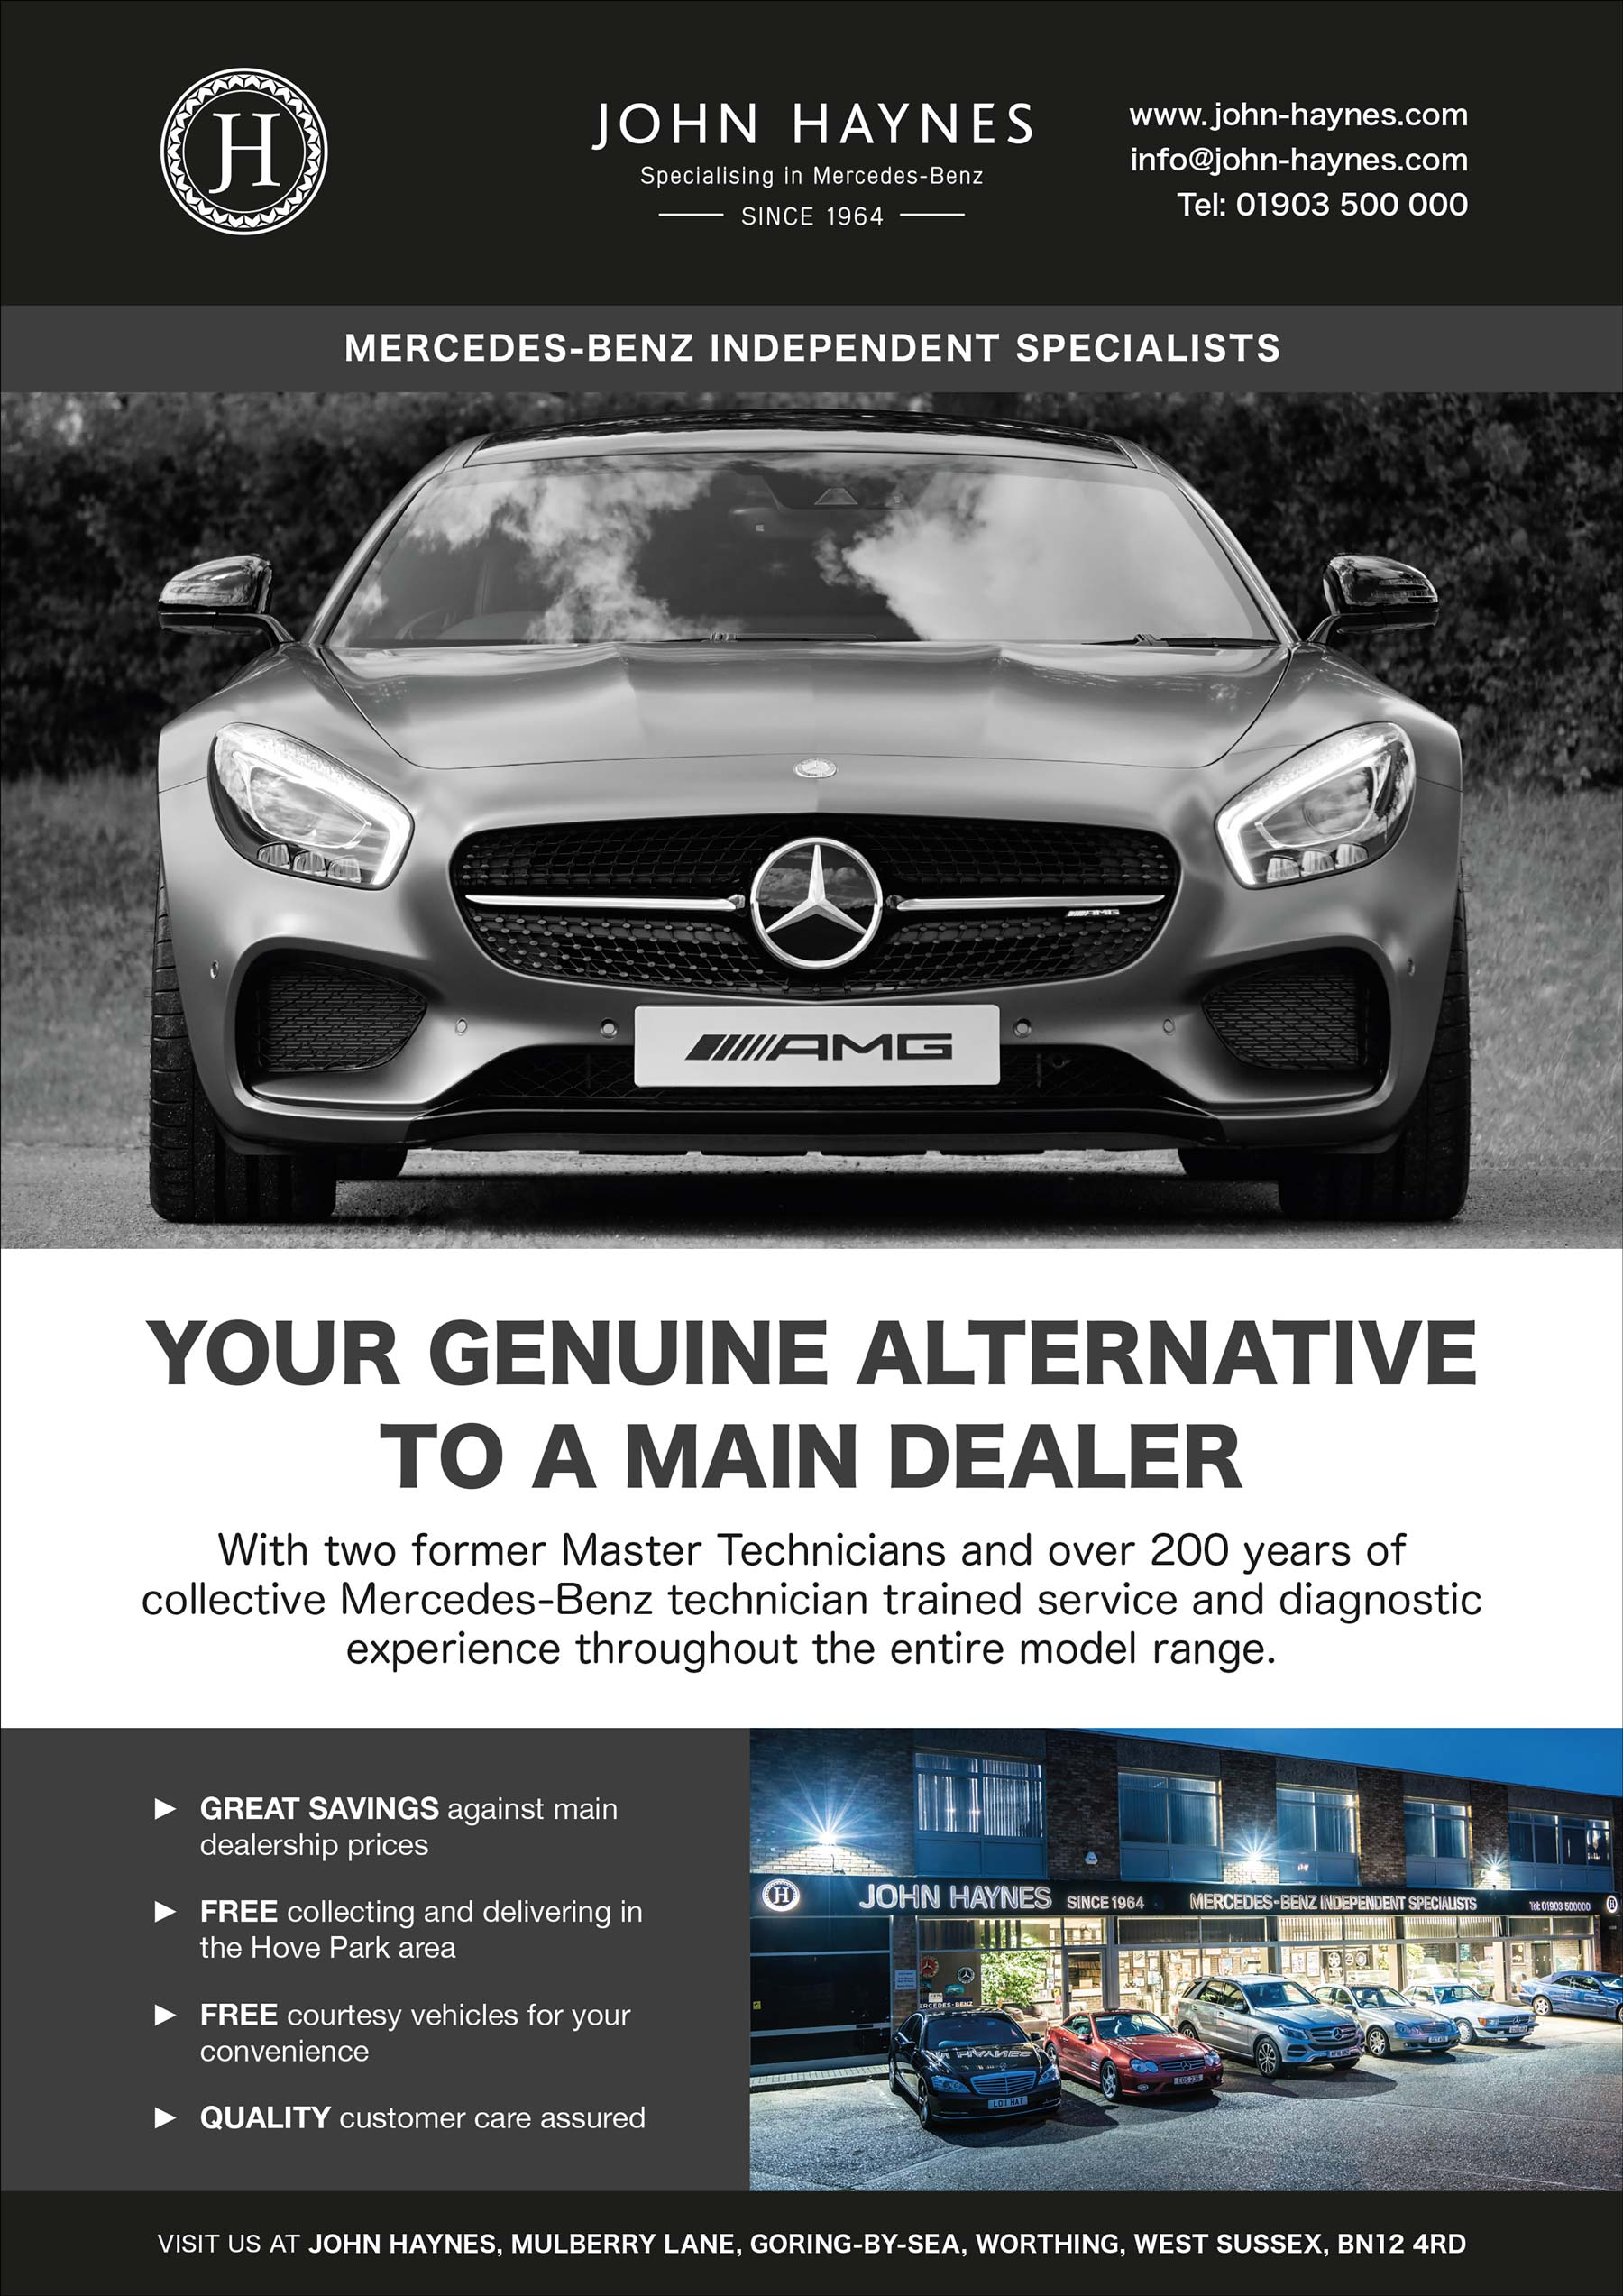 Mercedes Benz dealership magazine adverts